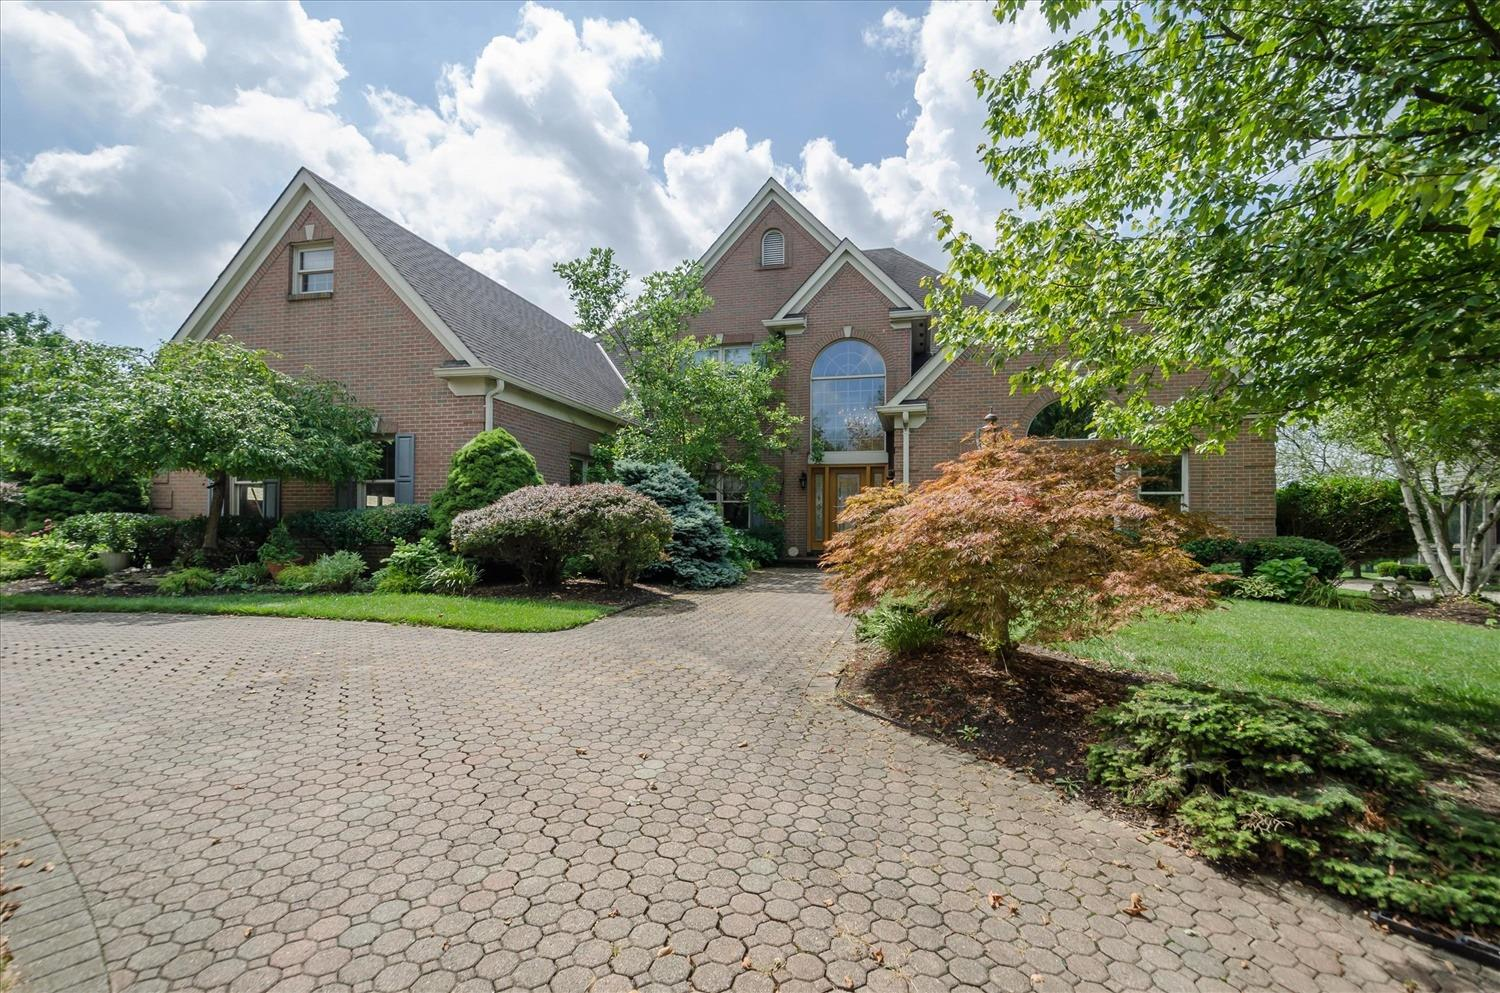 7416 Wetherington Dr West Chester - East, OH